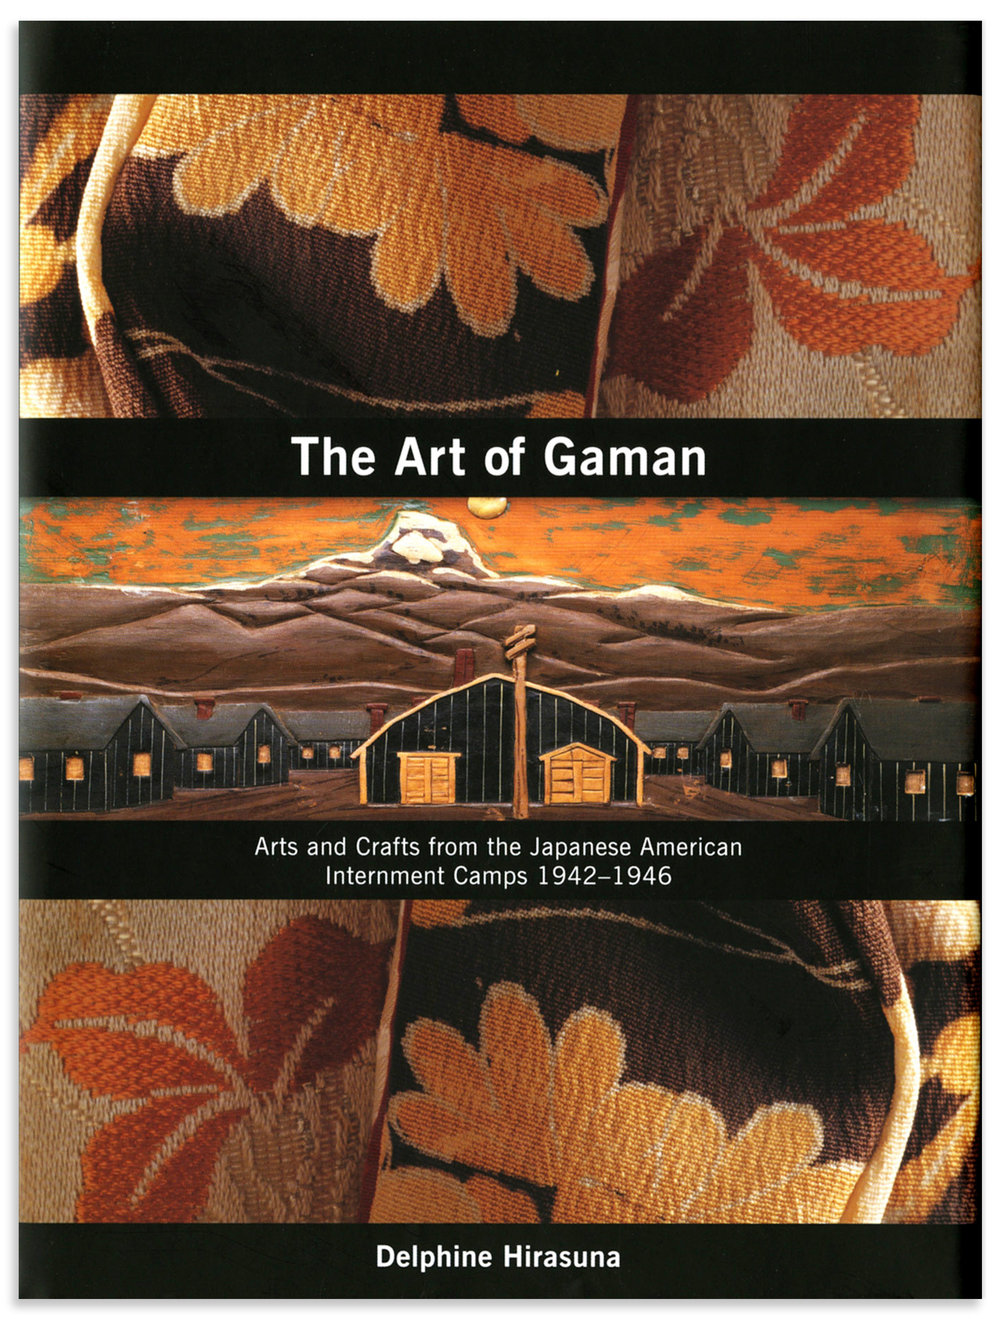 The Art of Gaman: Arts and Crafts from the Japanese Internment Camps 1942-1946